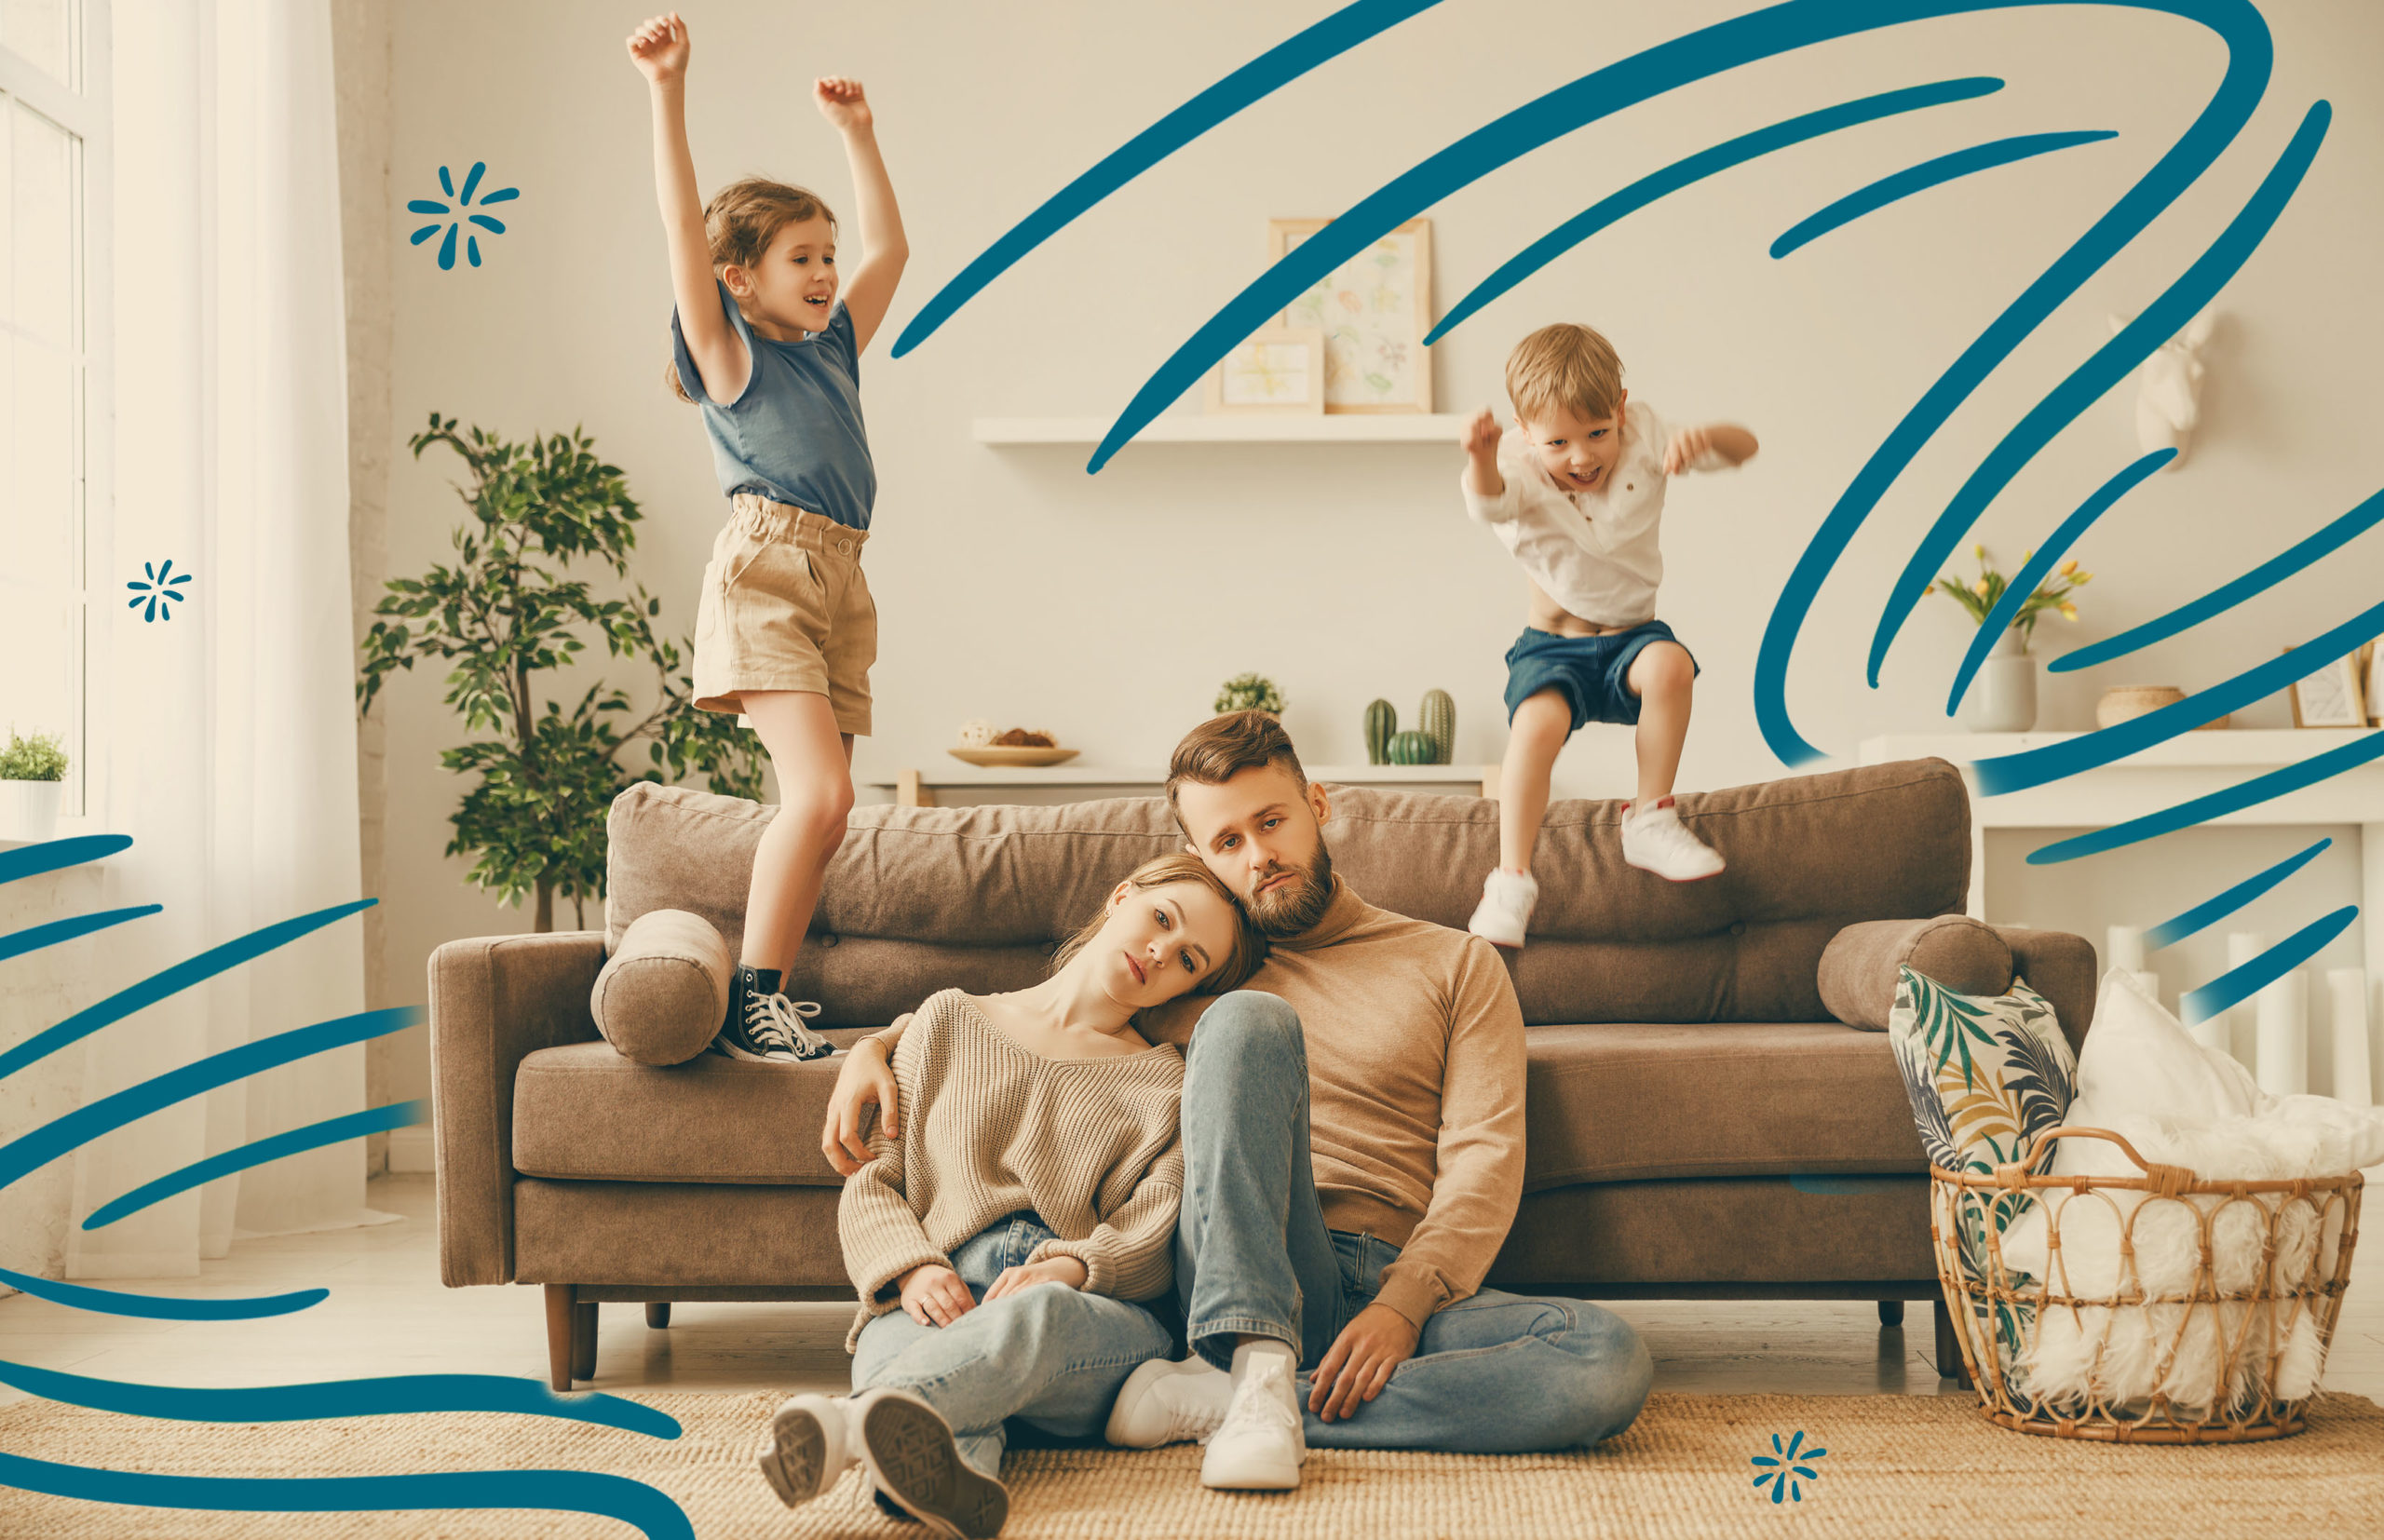 Stressed parents with kids jumping on couch behind them